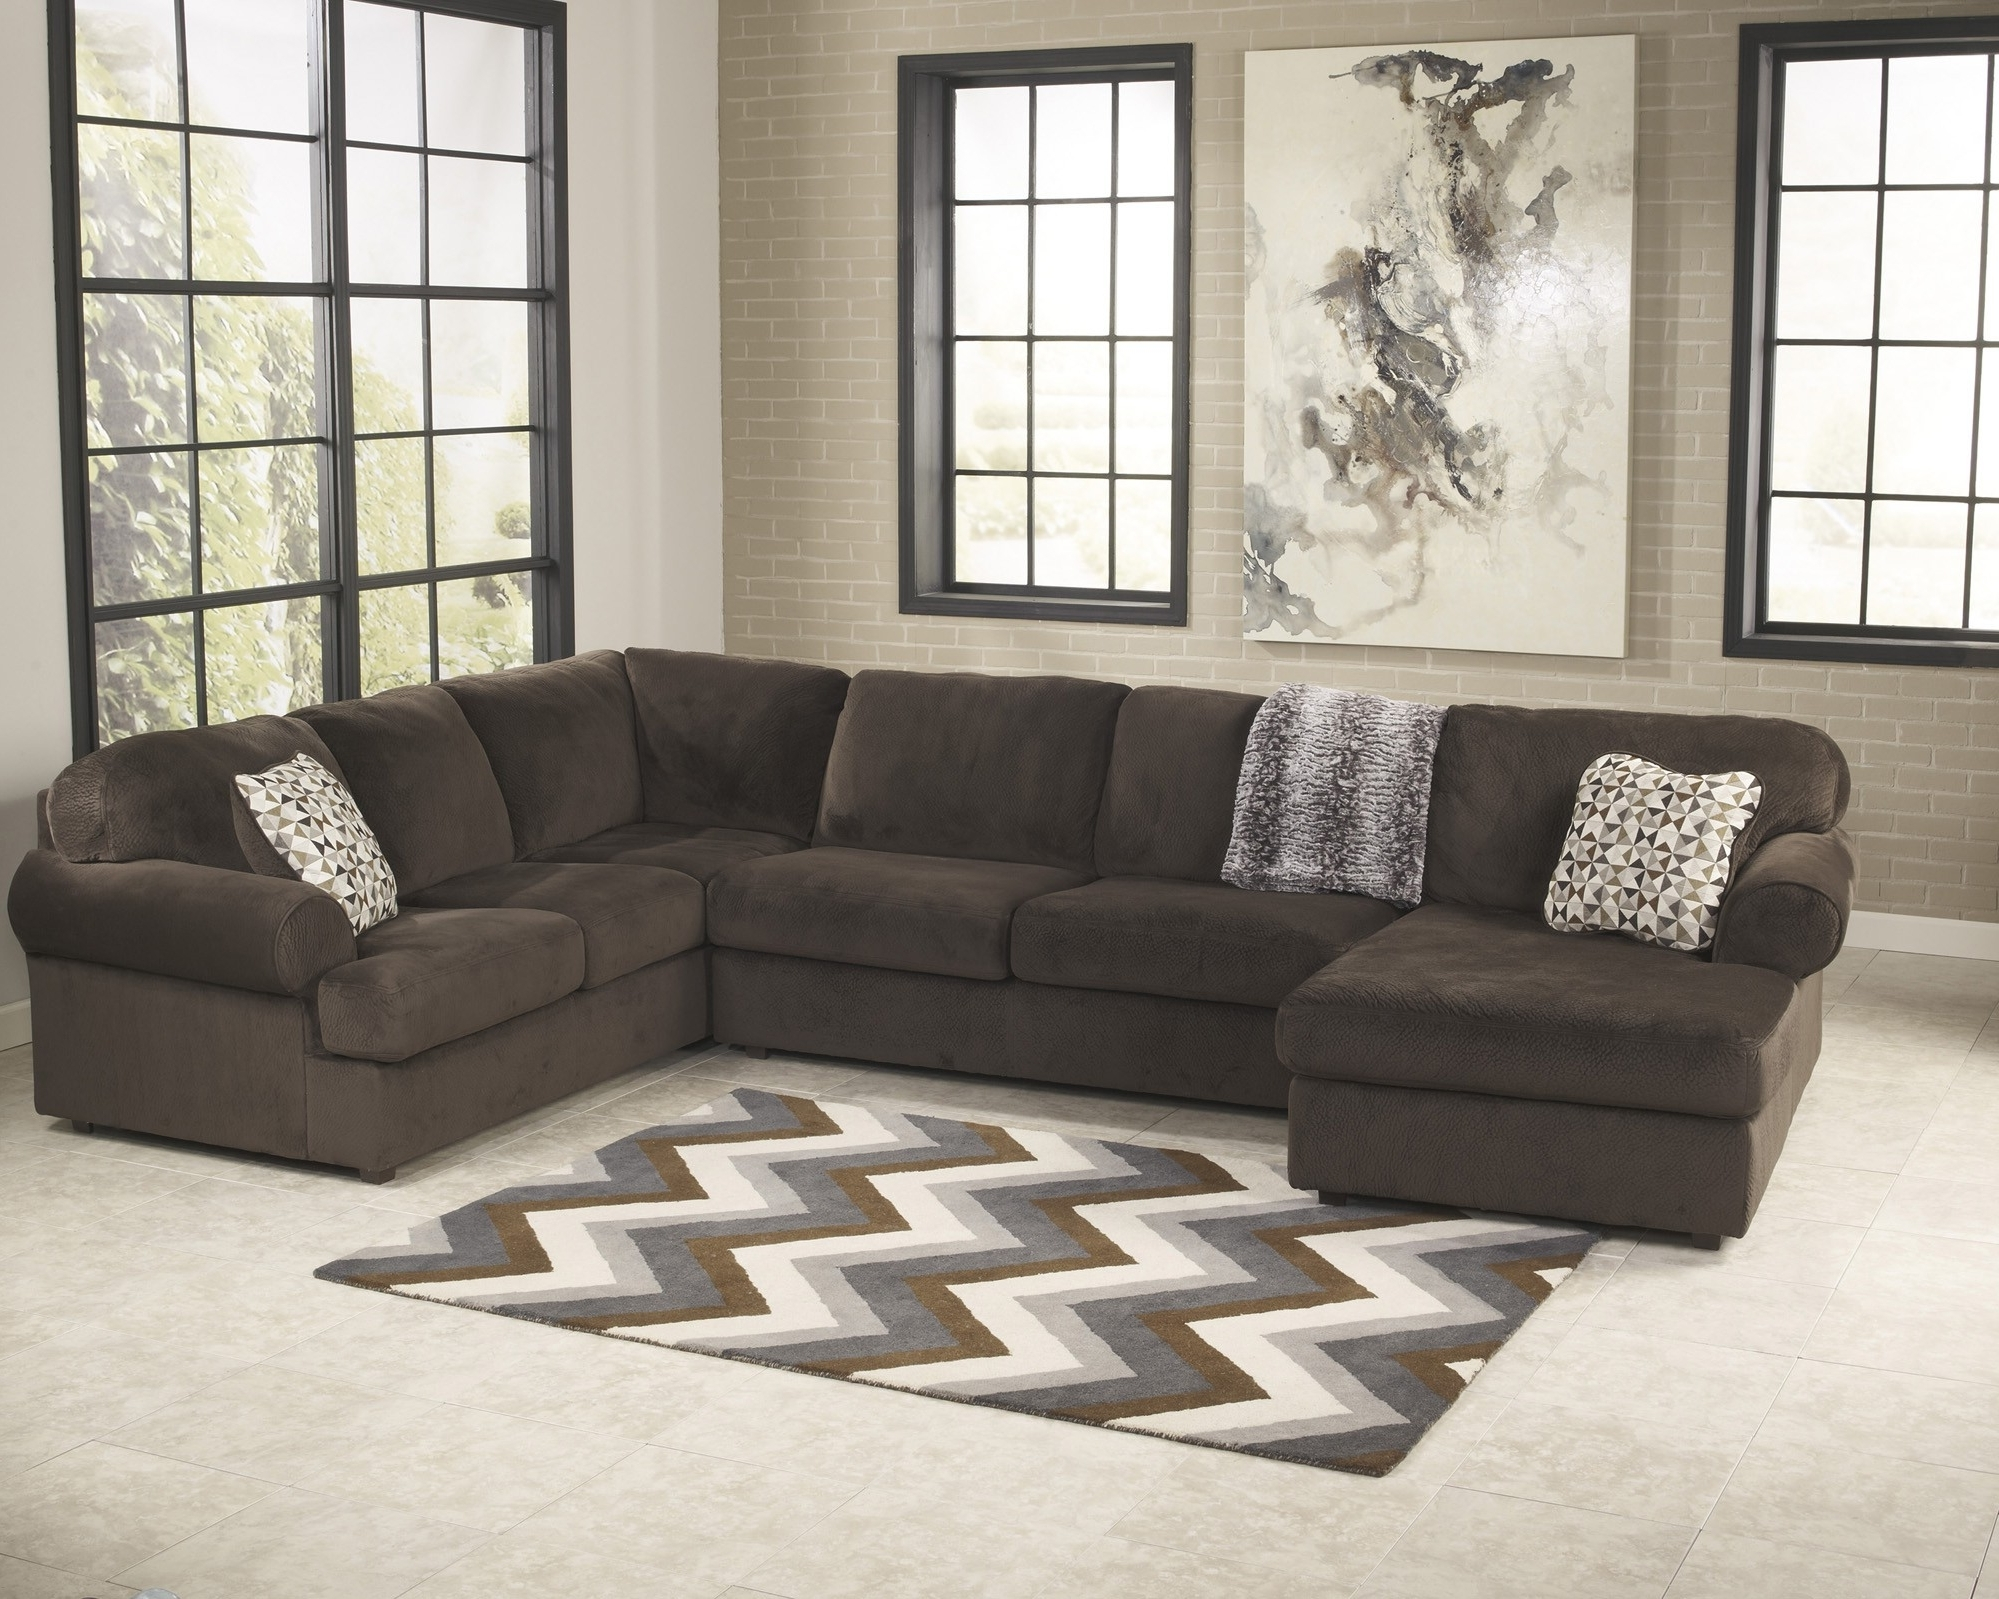 Jessa Place Chocolate 3 Piece Sectional Sofa For $ (View 7 of 20)